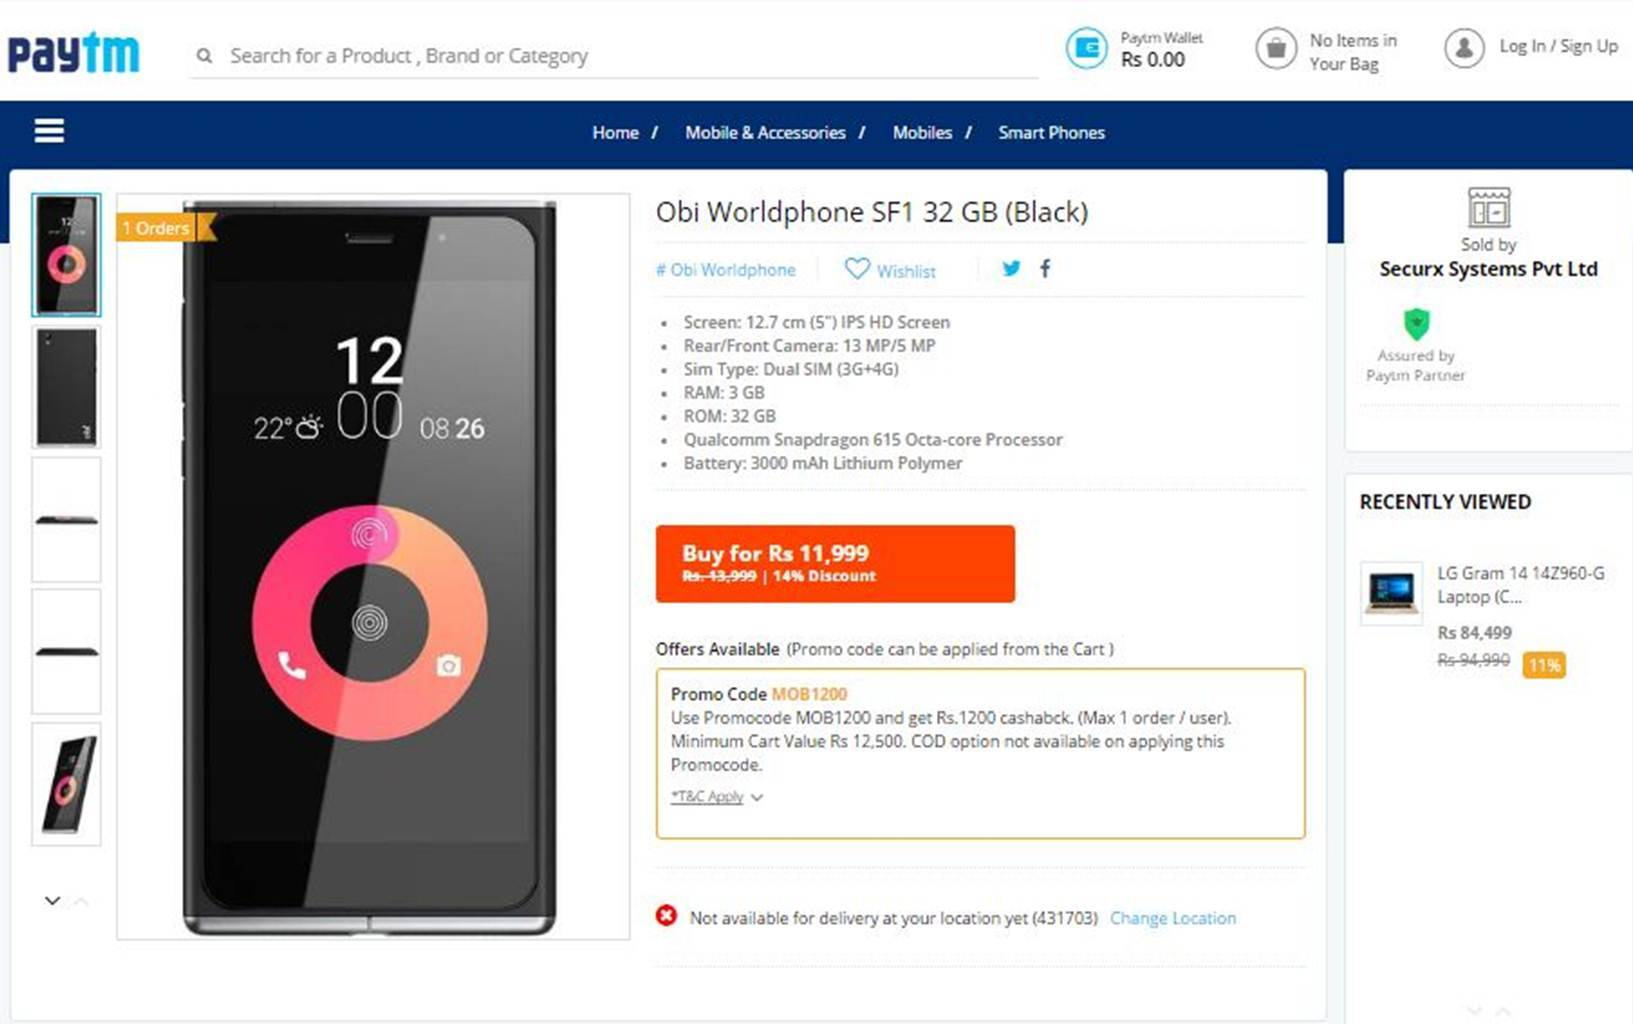 Obi, Paytm, Obi Worldphone SF1 Paytm availability, Obi Worldphone SF1 available on Paytm, Obi Worldphone SF1 review, Obi Worldphone SF1 specifications, Obi Worldphone SF1 price, smartphones, Android, mobiles, tech news, technology